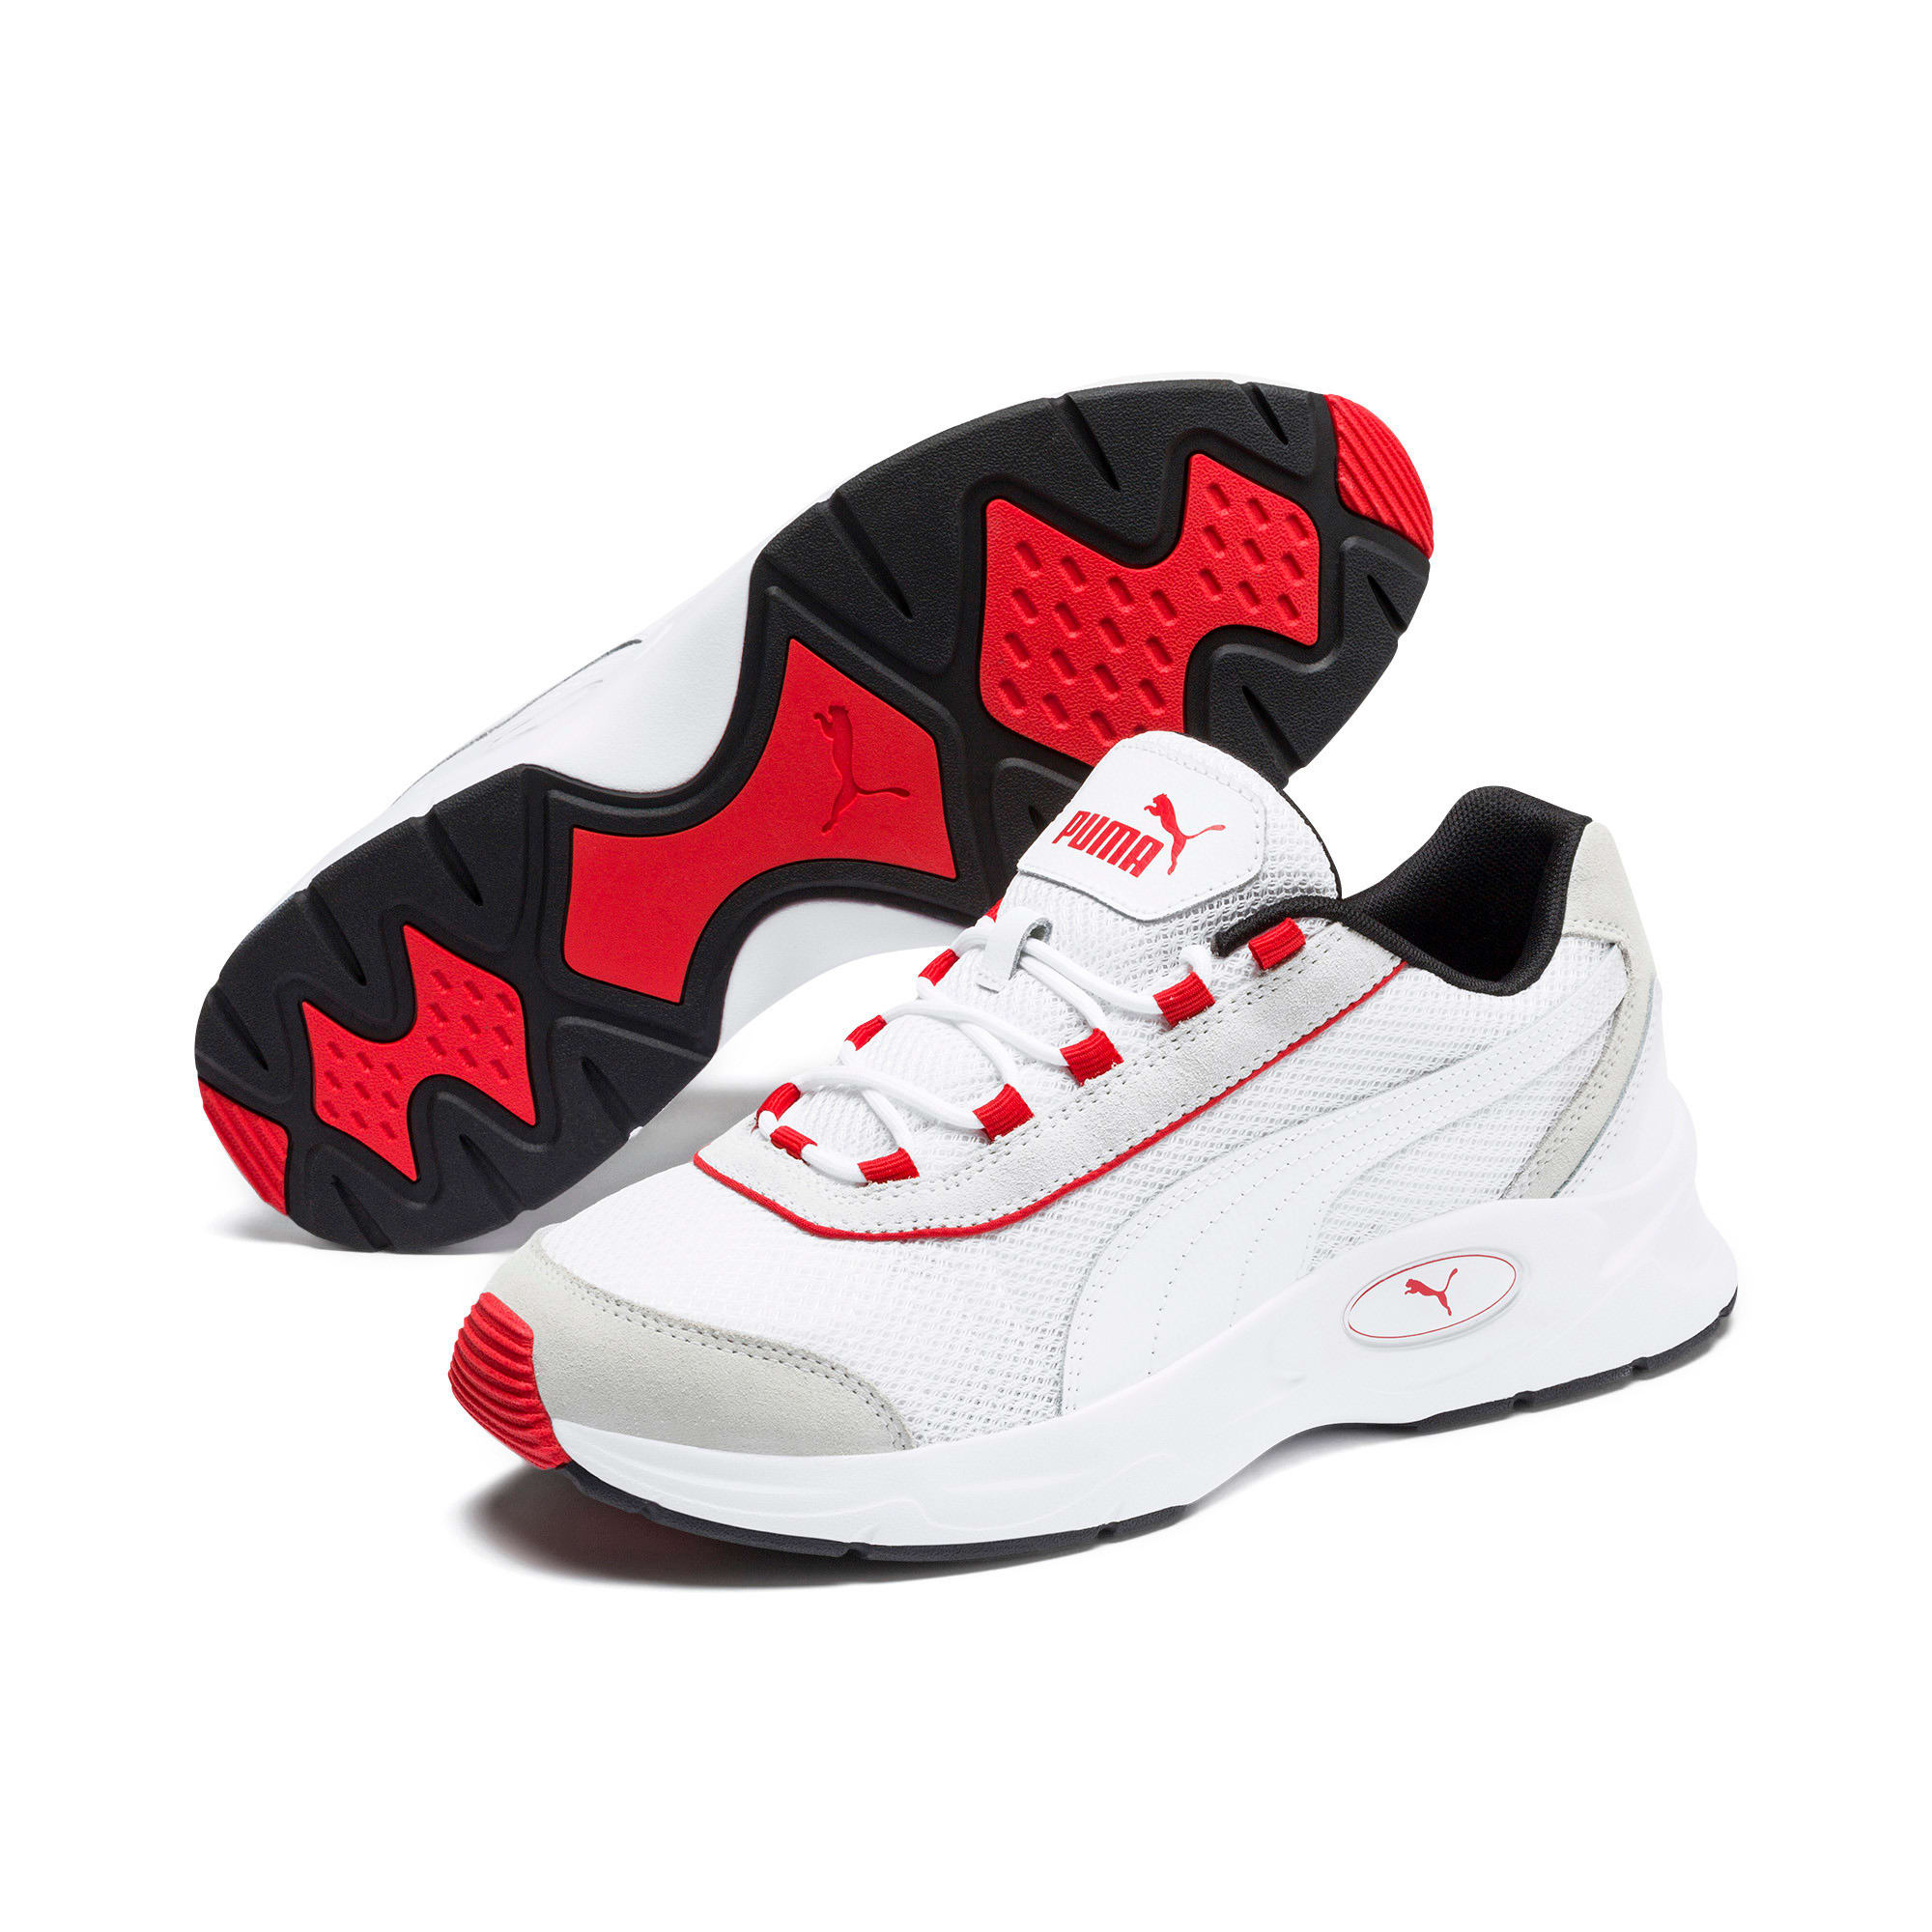 Thumbnail 3 of Nucleus Lux Trainers, Puma White-High Risk Red, medium